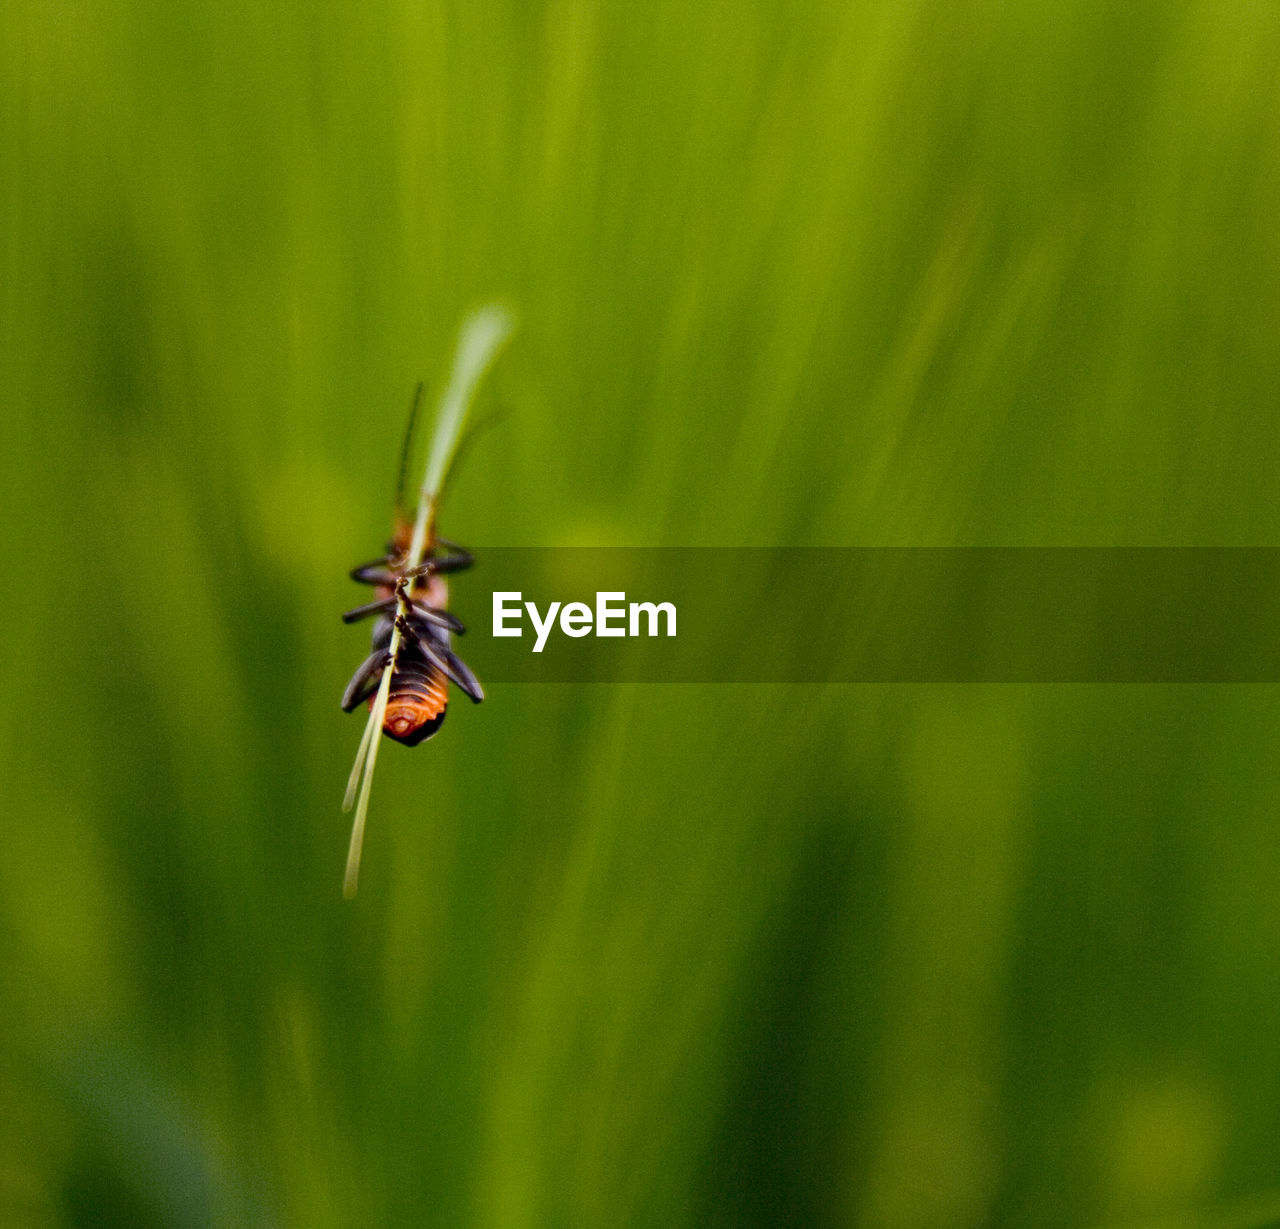 one animal, insect, green color, animals in the wild, animal themes, nature, animal wildlife, growth, no people, close-up, day, plant, outdoors, grass, beauty in nature, damselfly